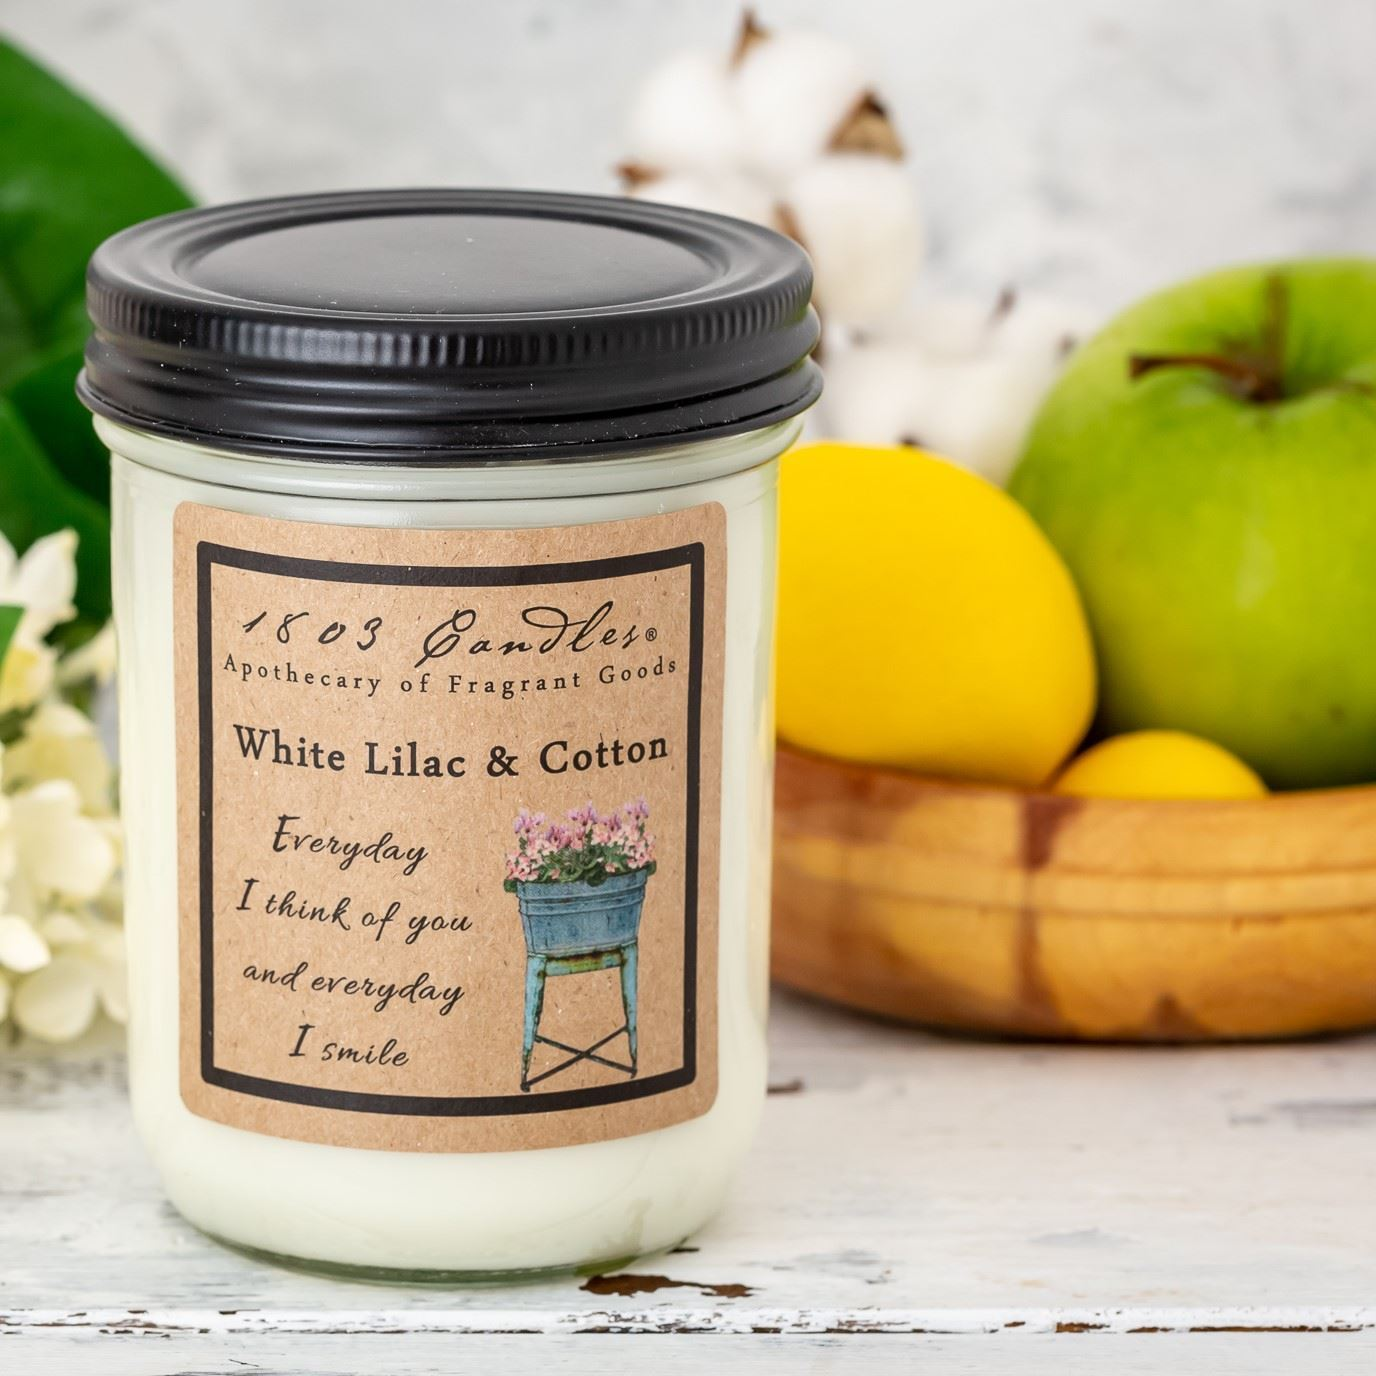 1803 White Lilac and Cotton Soy Candle 14 oz